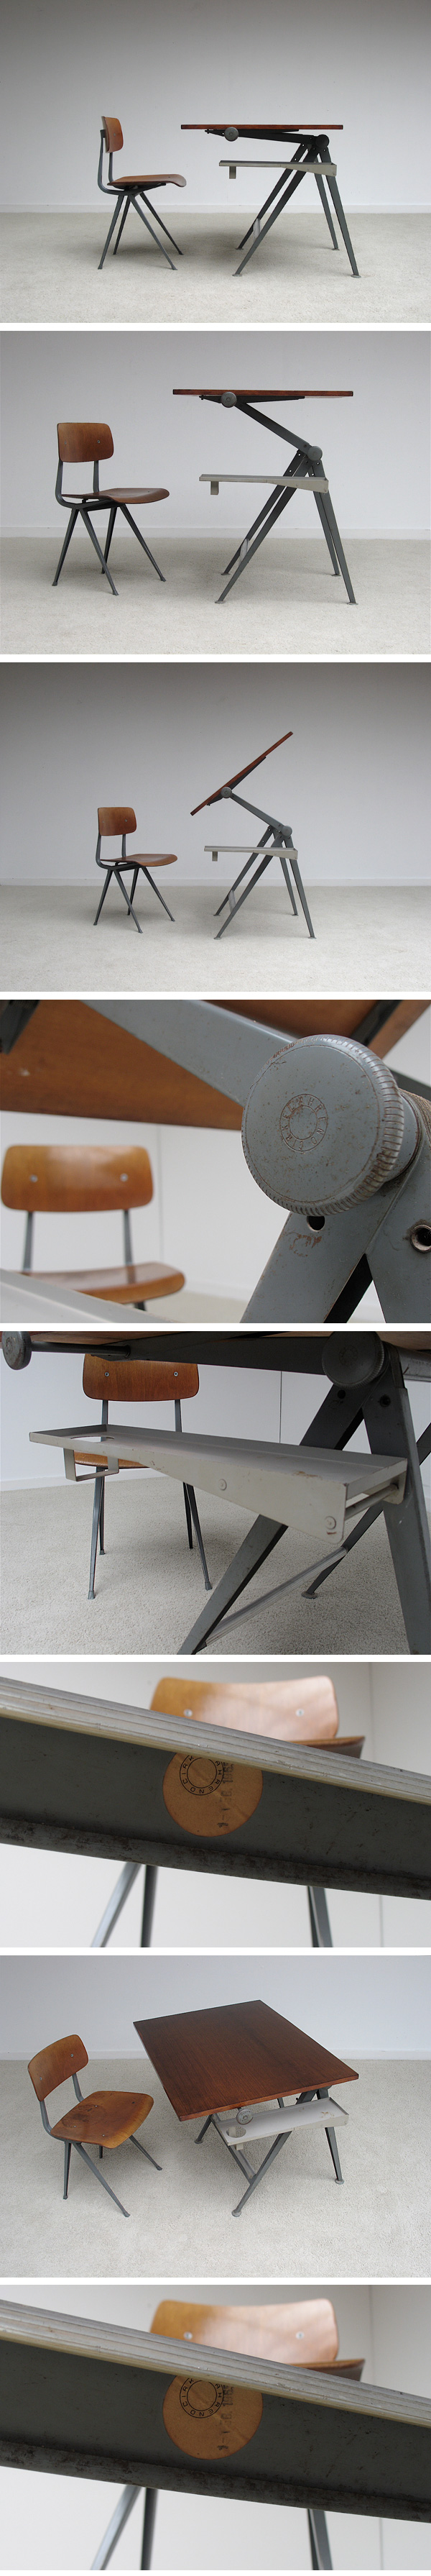 Friso, Kramer, Industrial, drafting, table, chair